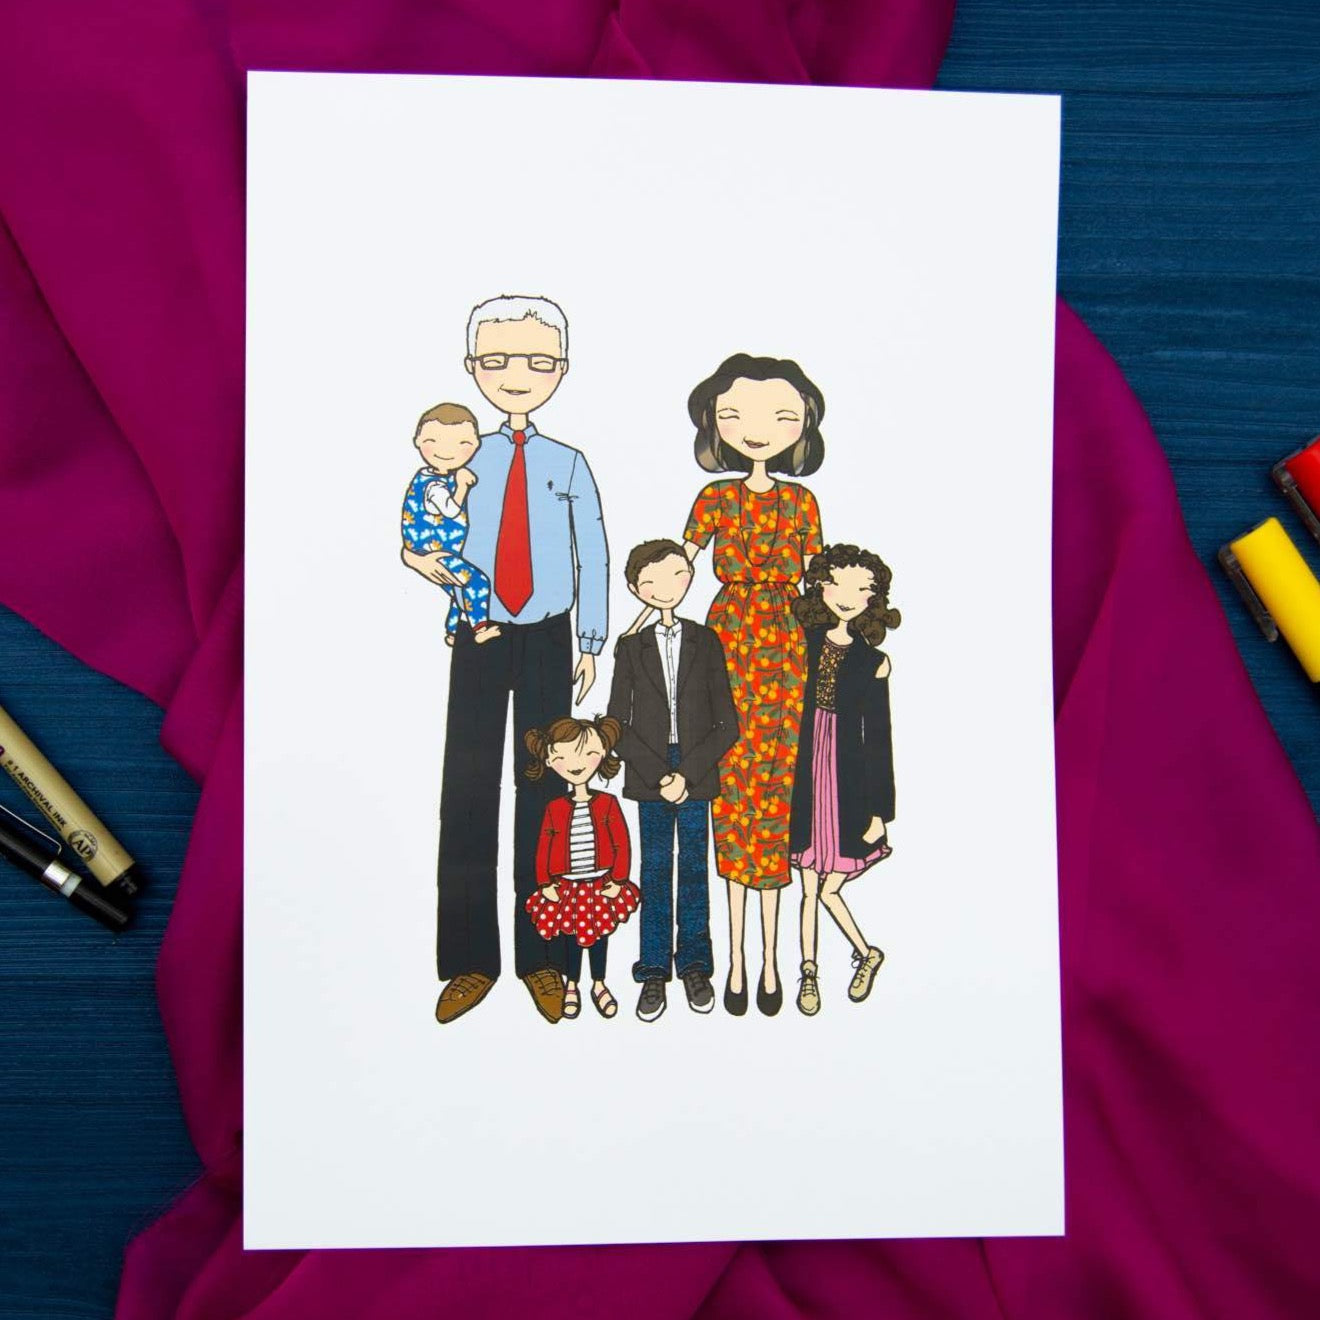 White page with cartoon drawing of family laid on pink fabric background.